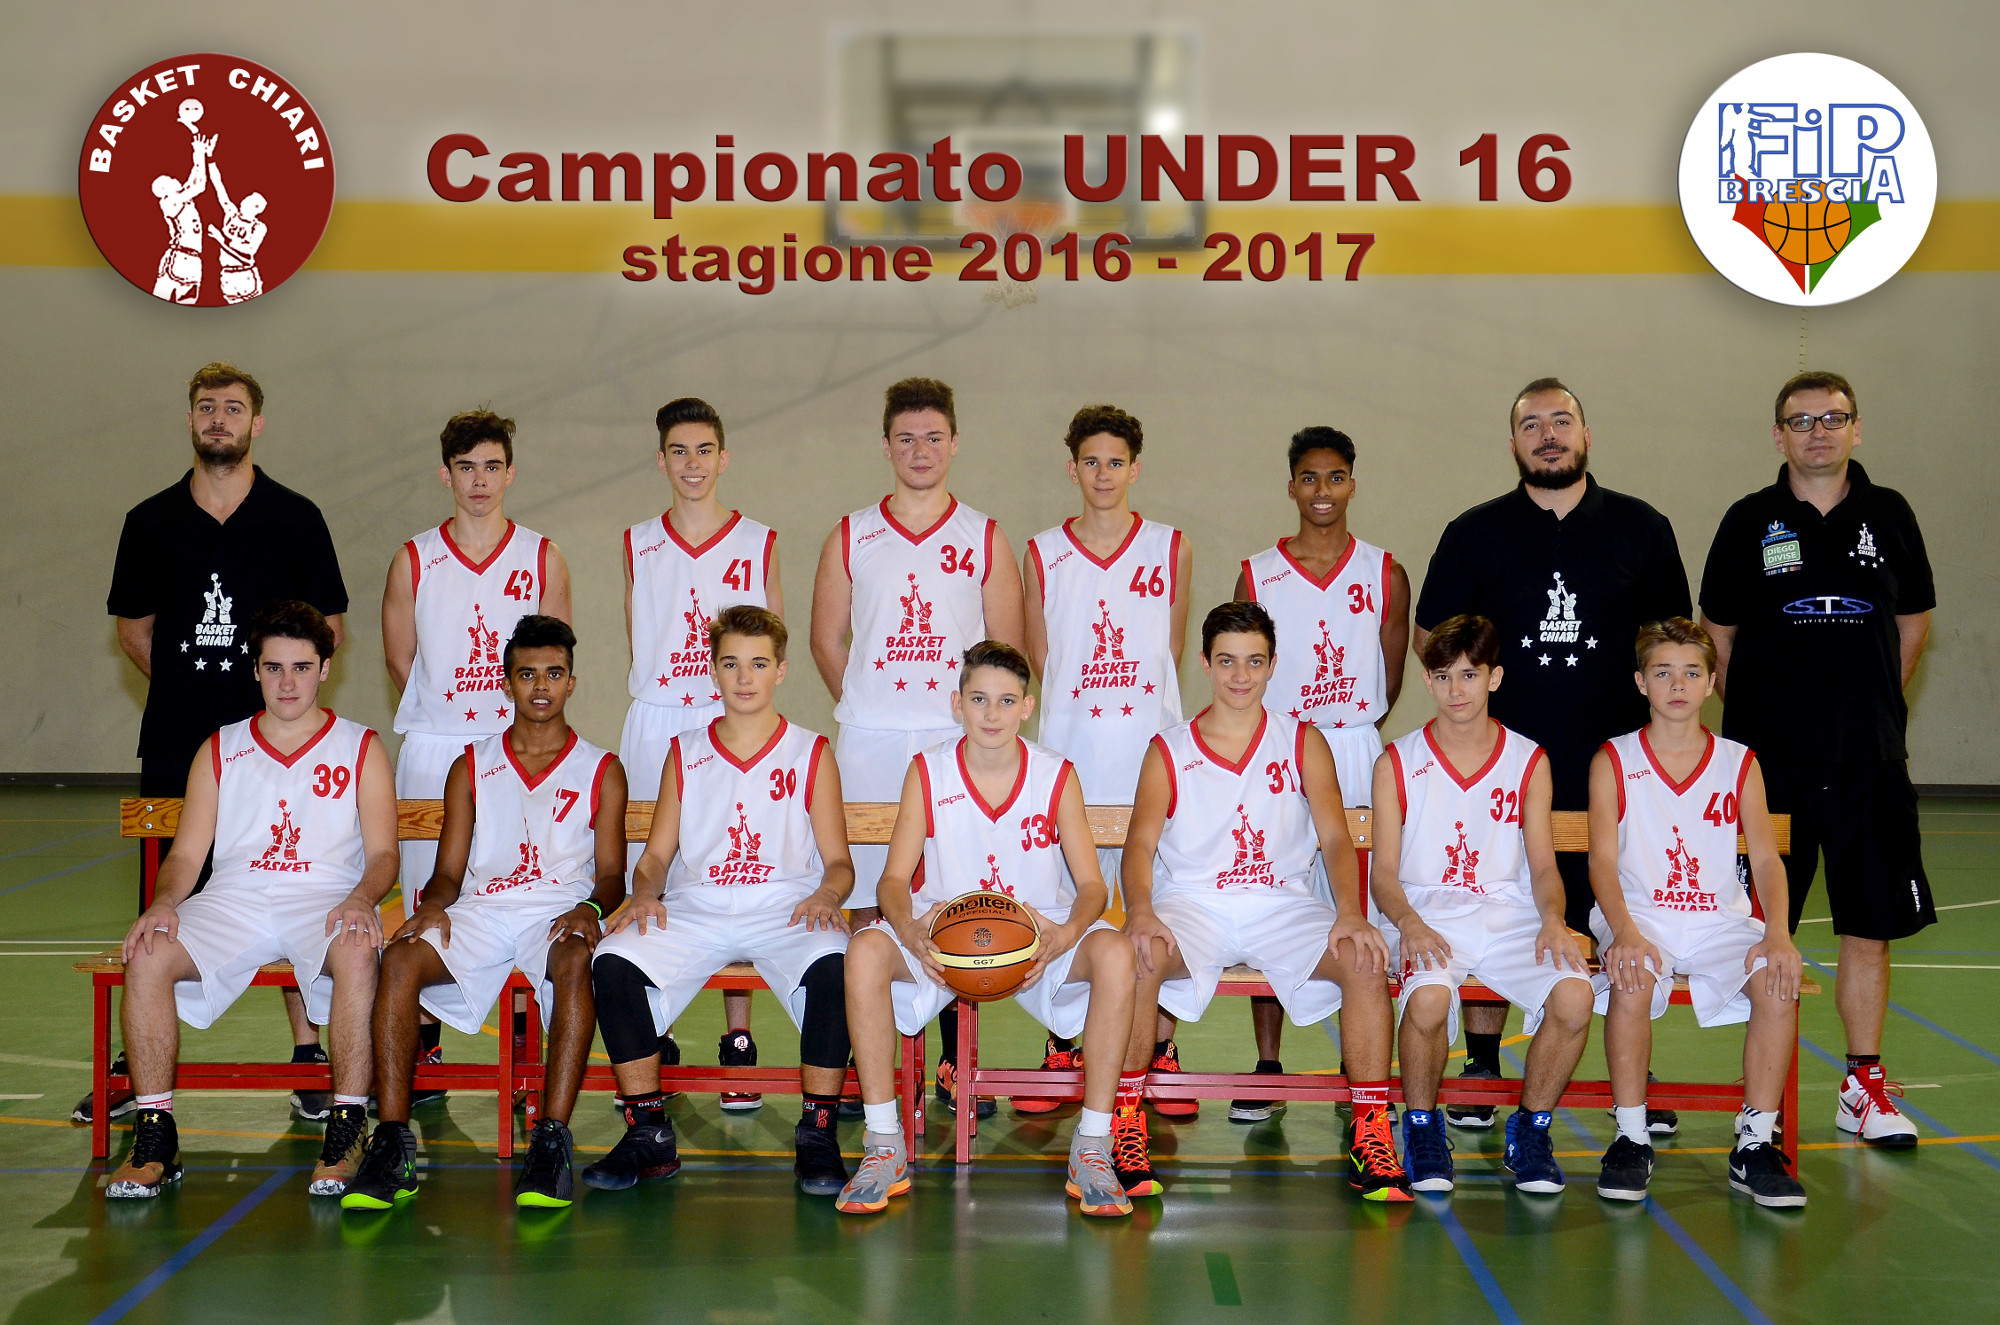 Basket Chiari - Under 16 - 20165/2017